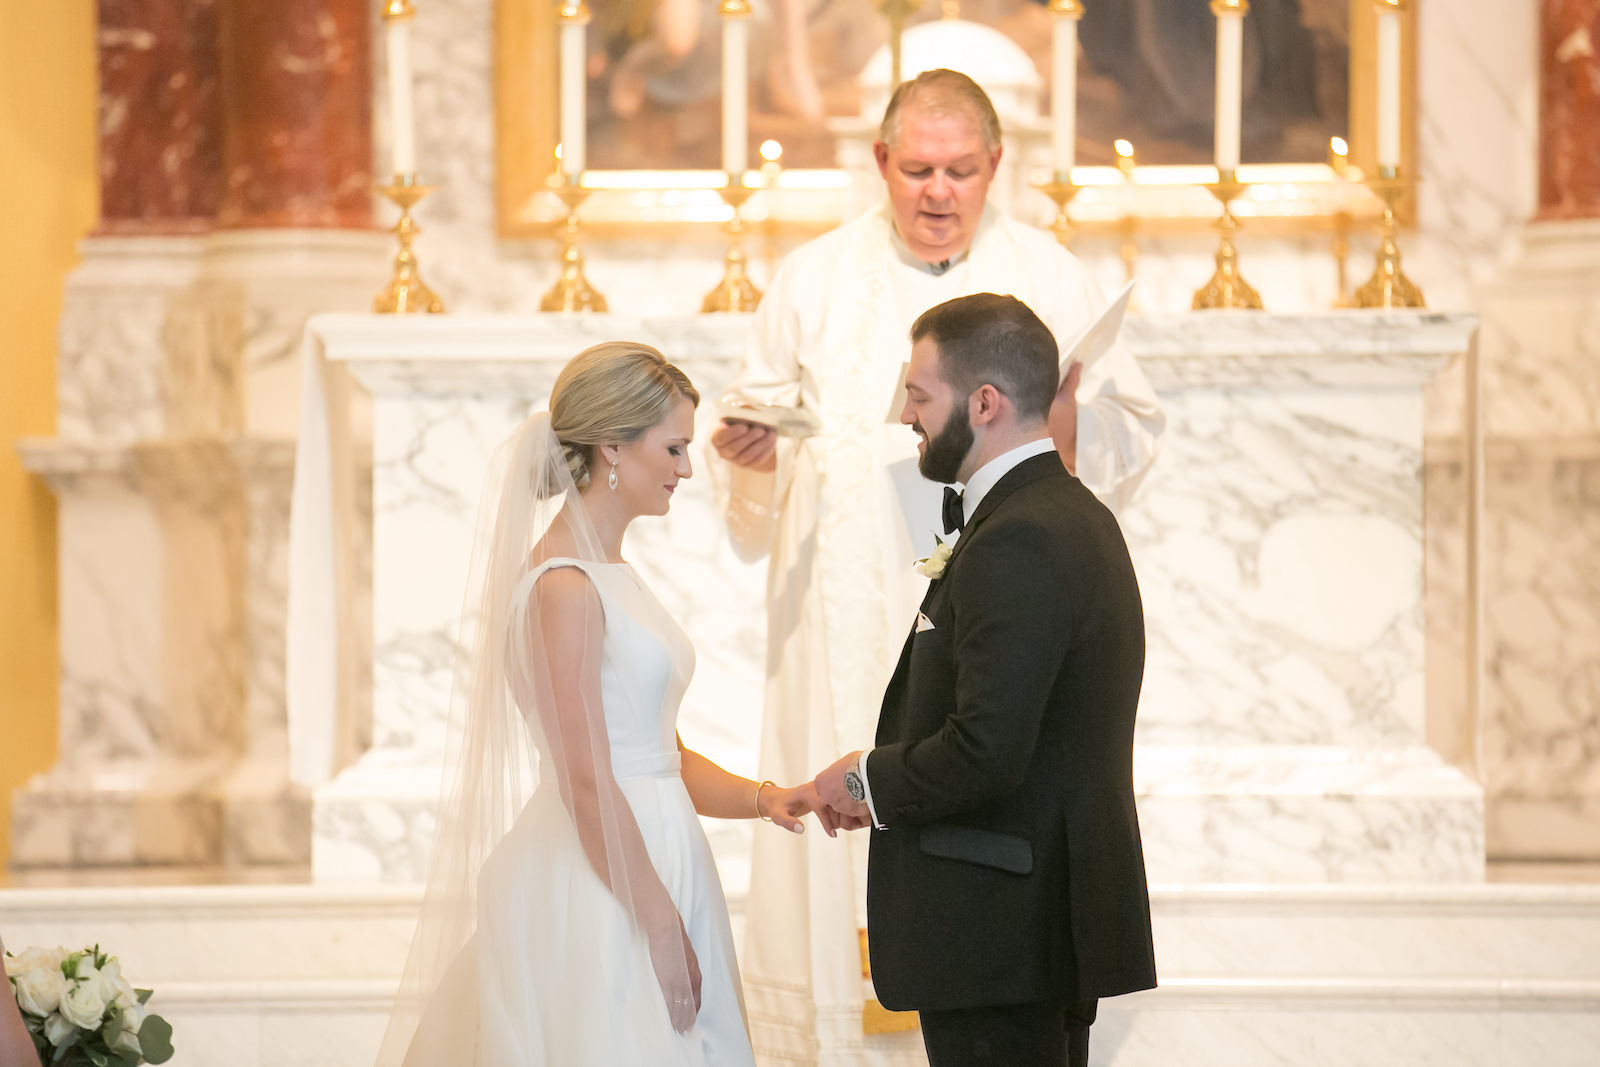 Bride and Groom Exchanging Vows during Traditional Church Wedding Ceremony in Tampa